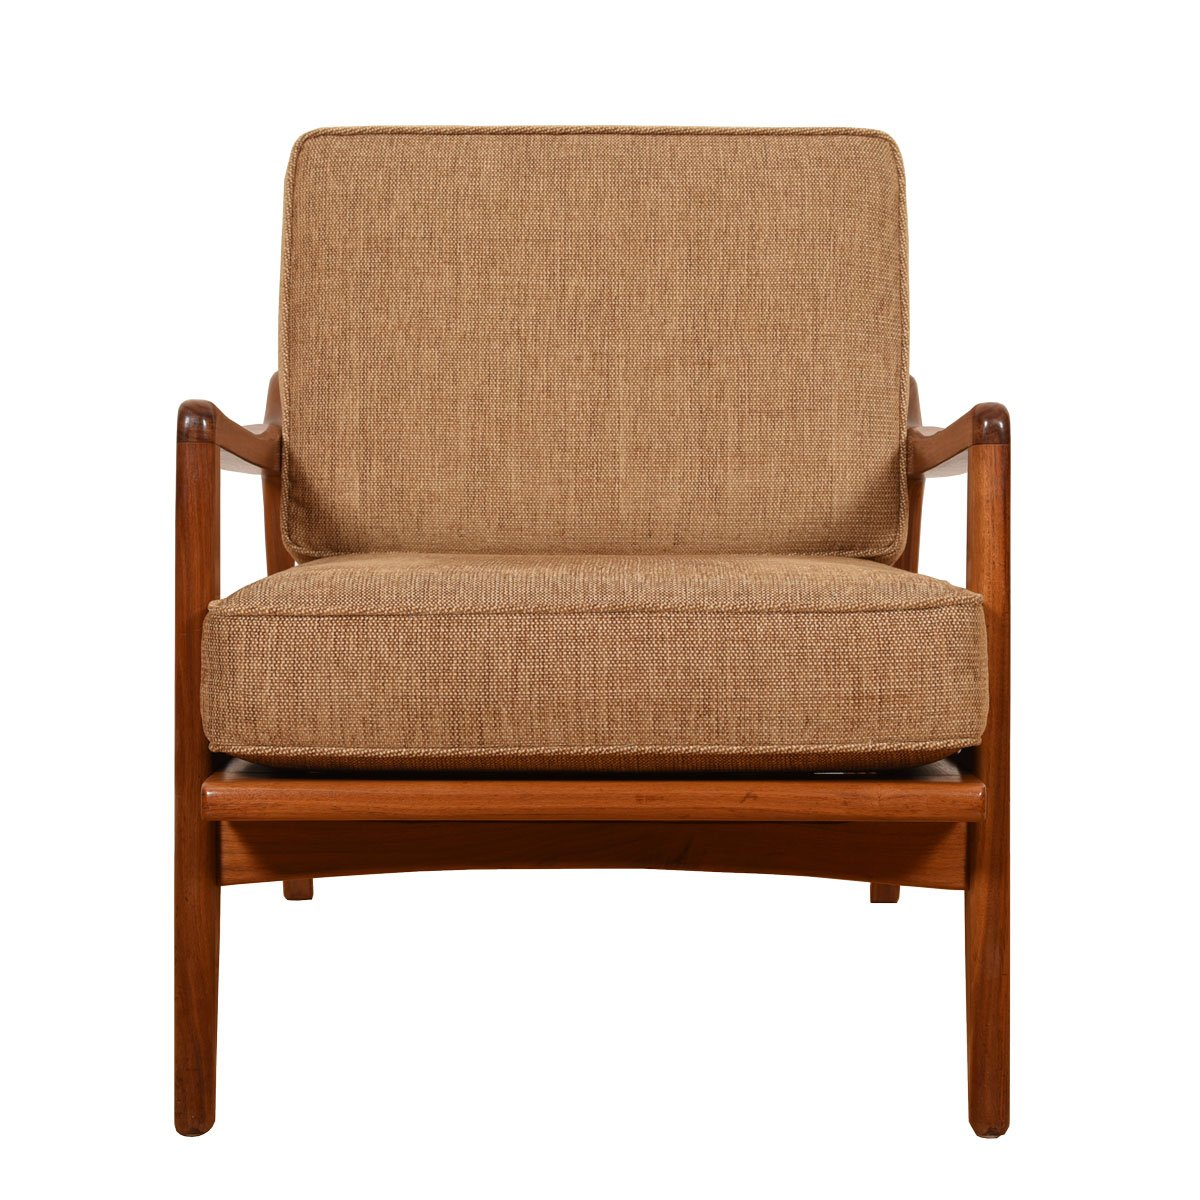 Pair Walnut Club Chairs by Smilow Design